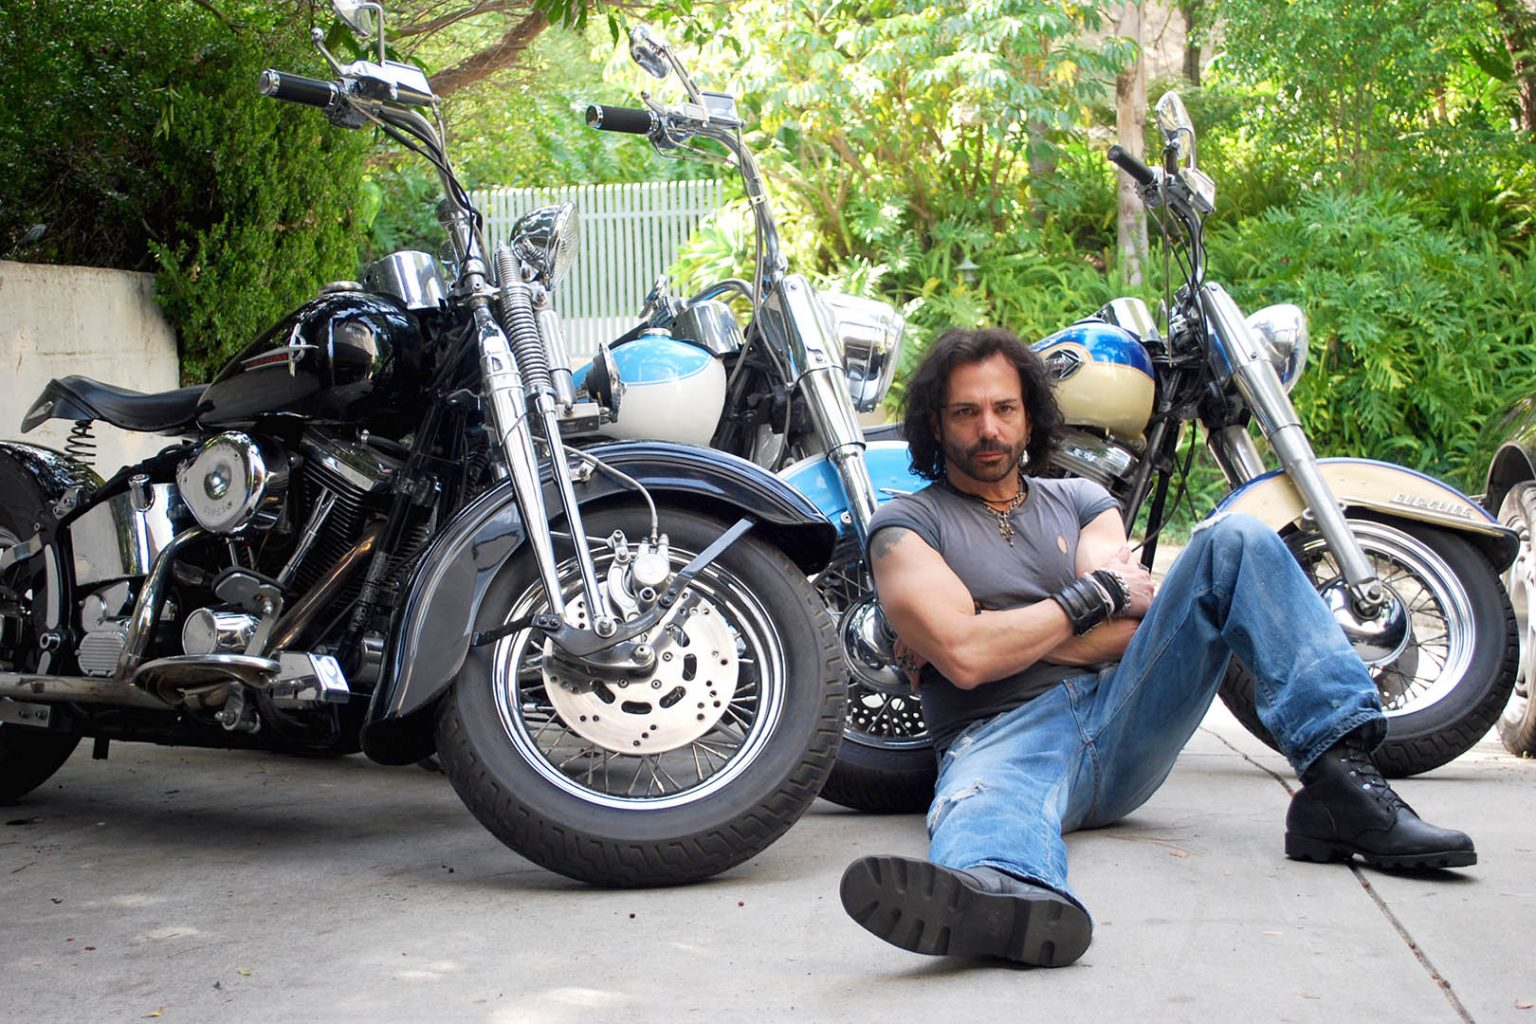 Richard Grieco Interview: Passion For Acting, Motorcycles, And Freedom